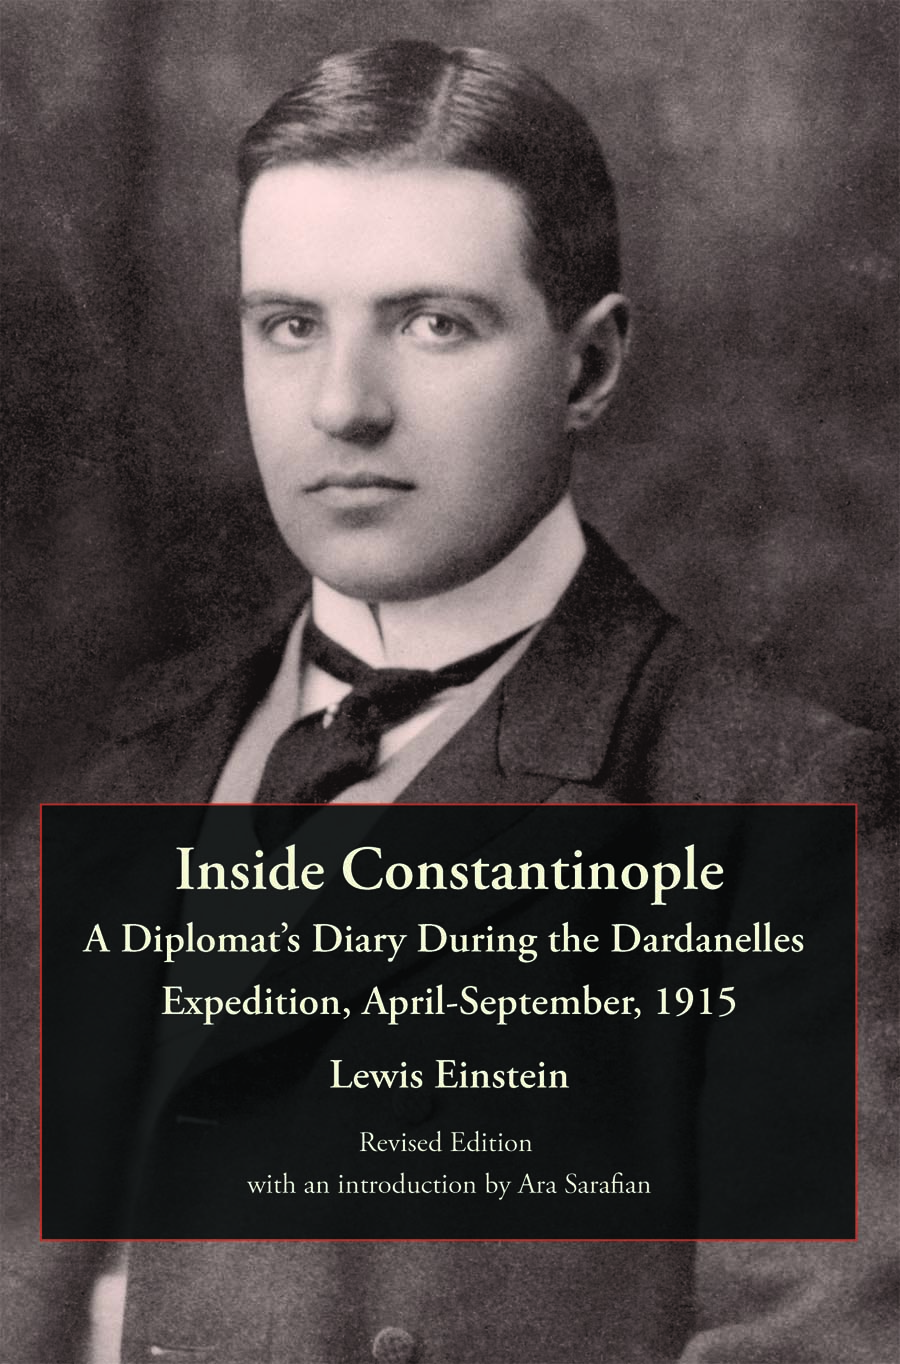 Inside Constantinople: A Diplomatist's Diary During the Dardanelles Expedition, April-September, 1915